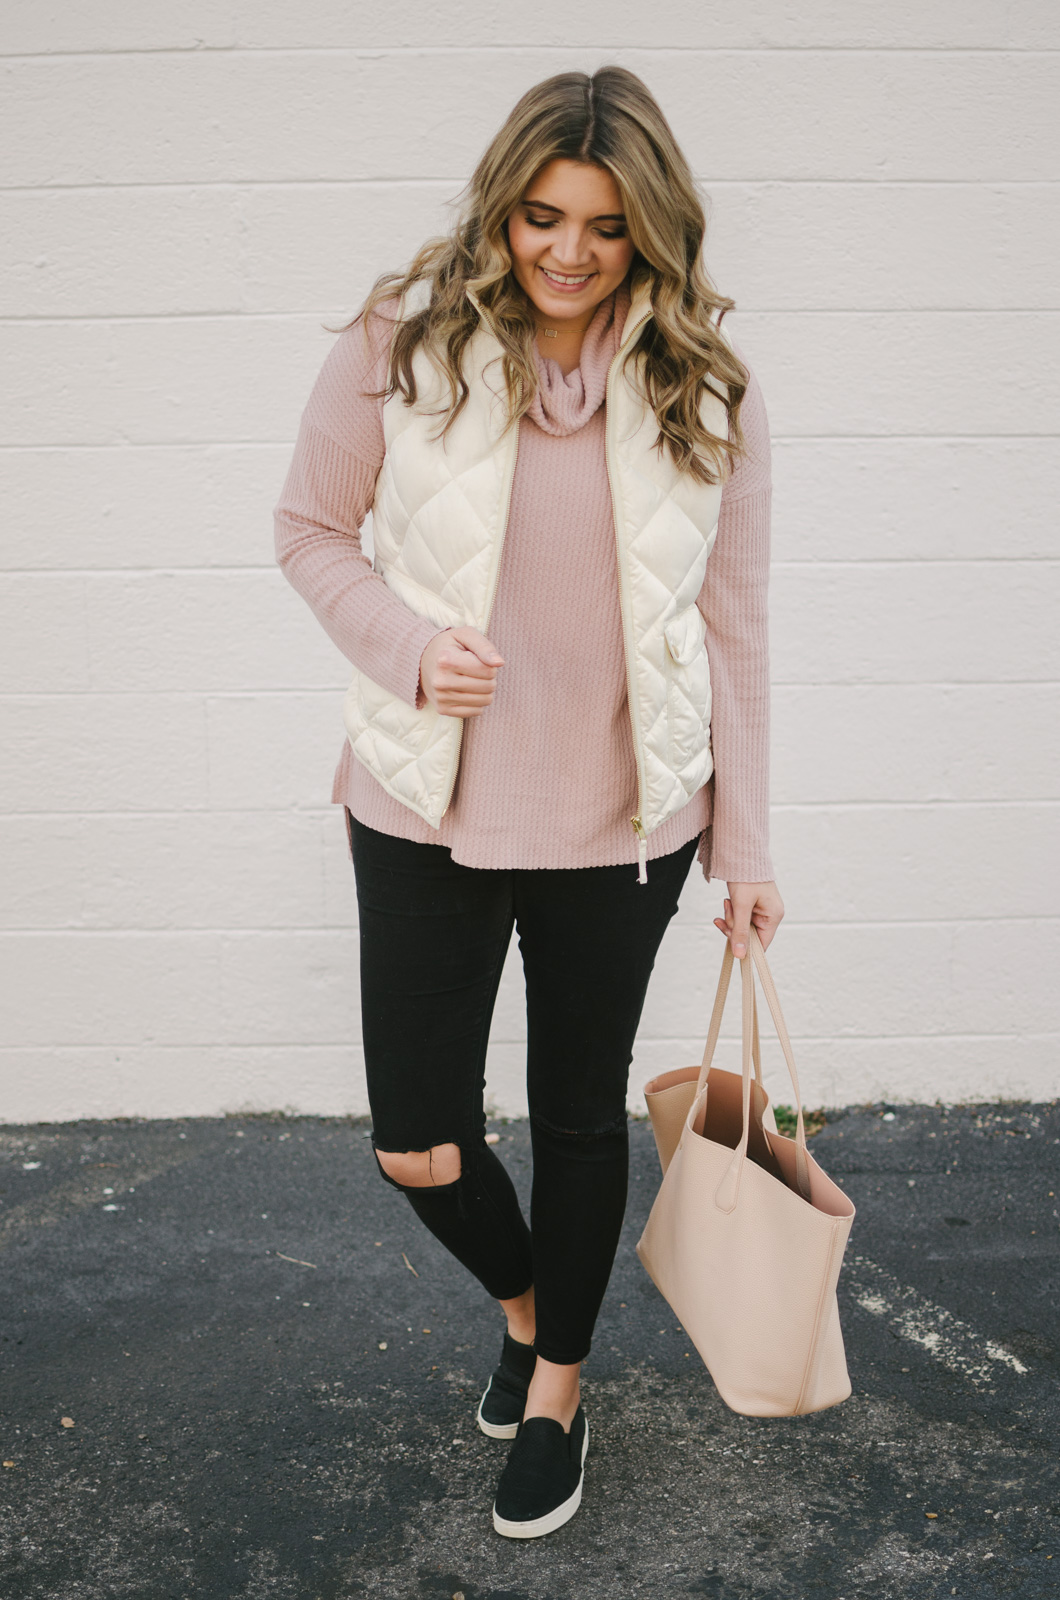 white puffer vest outfit - how to wear a cream puffer vest | shop this look or see more winter outfits at bylaurenm.com!